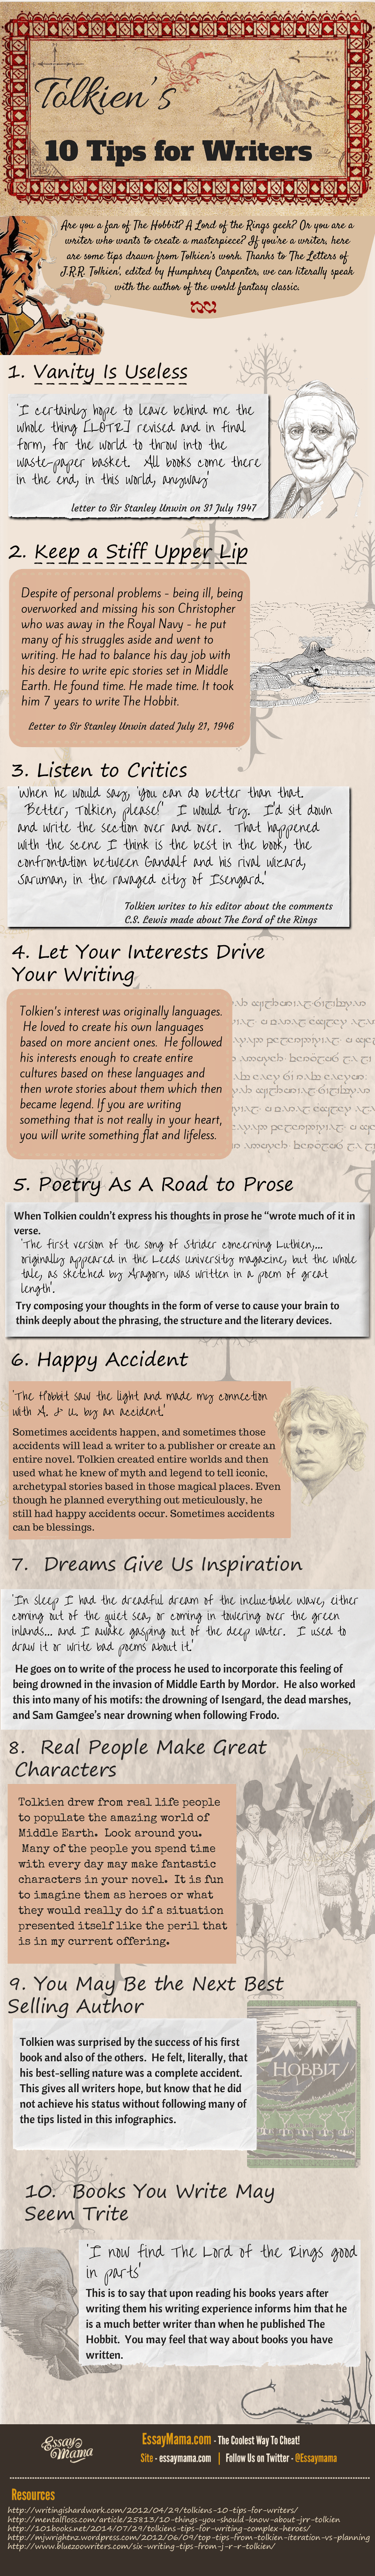 J.R.R. Tolkien's 10 Tips for Writers